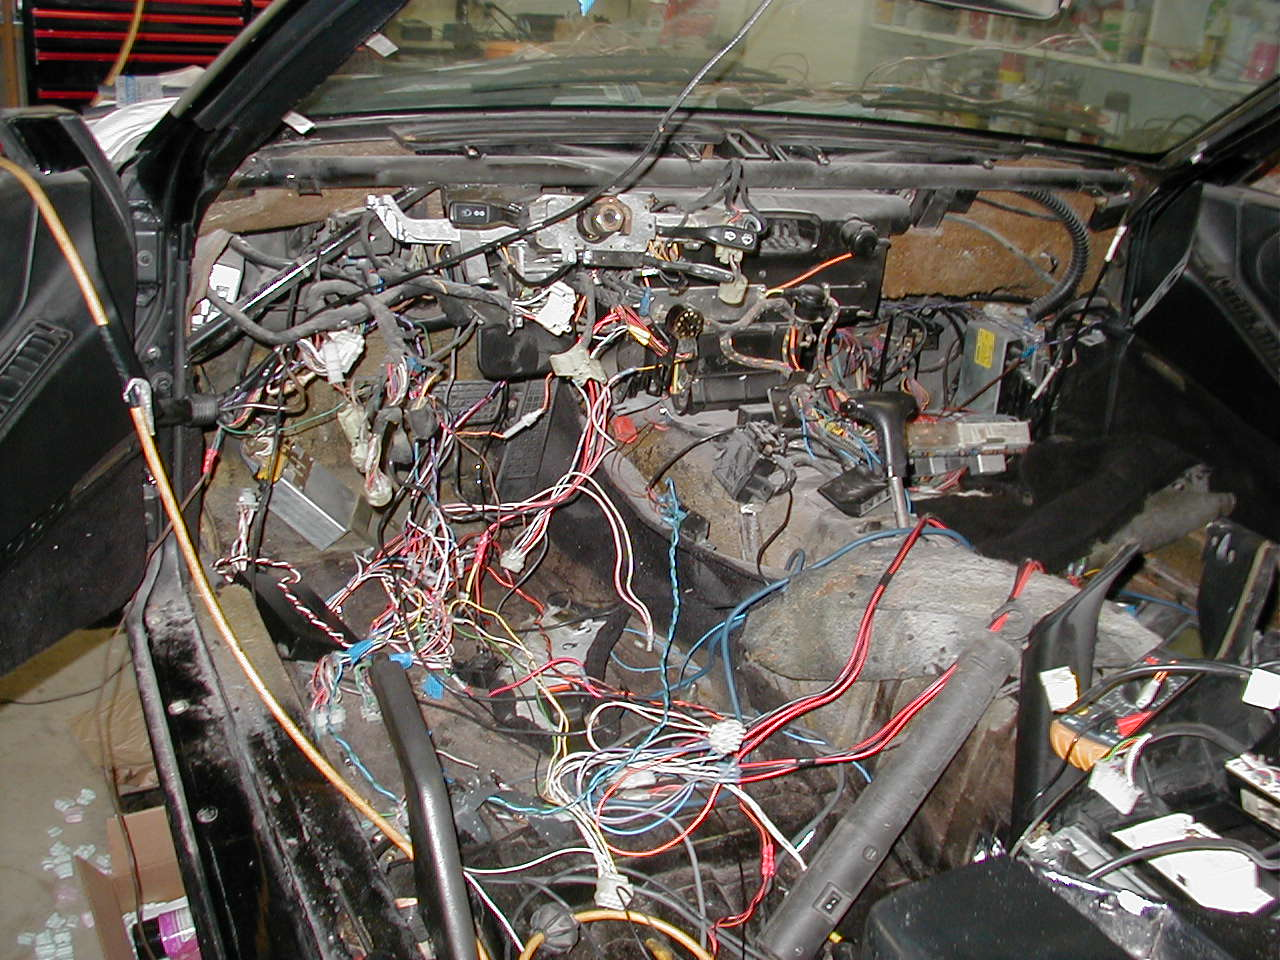 Ignition Switch Wiring What Color Goes To Rennlist 1979 Porsche 924 Diagram Sorry Couldnt Resist Posting One Of My Favorite 928 Pics